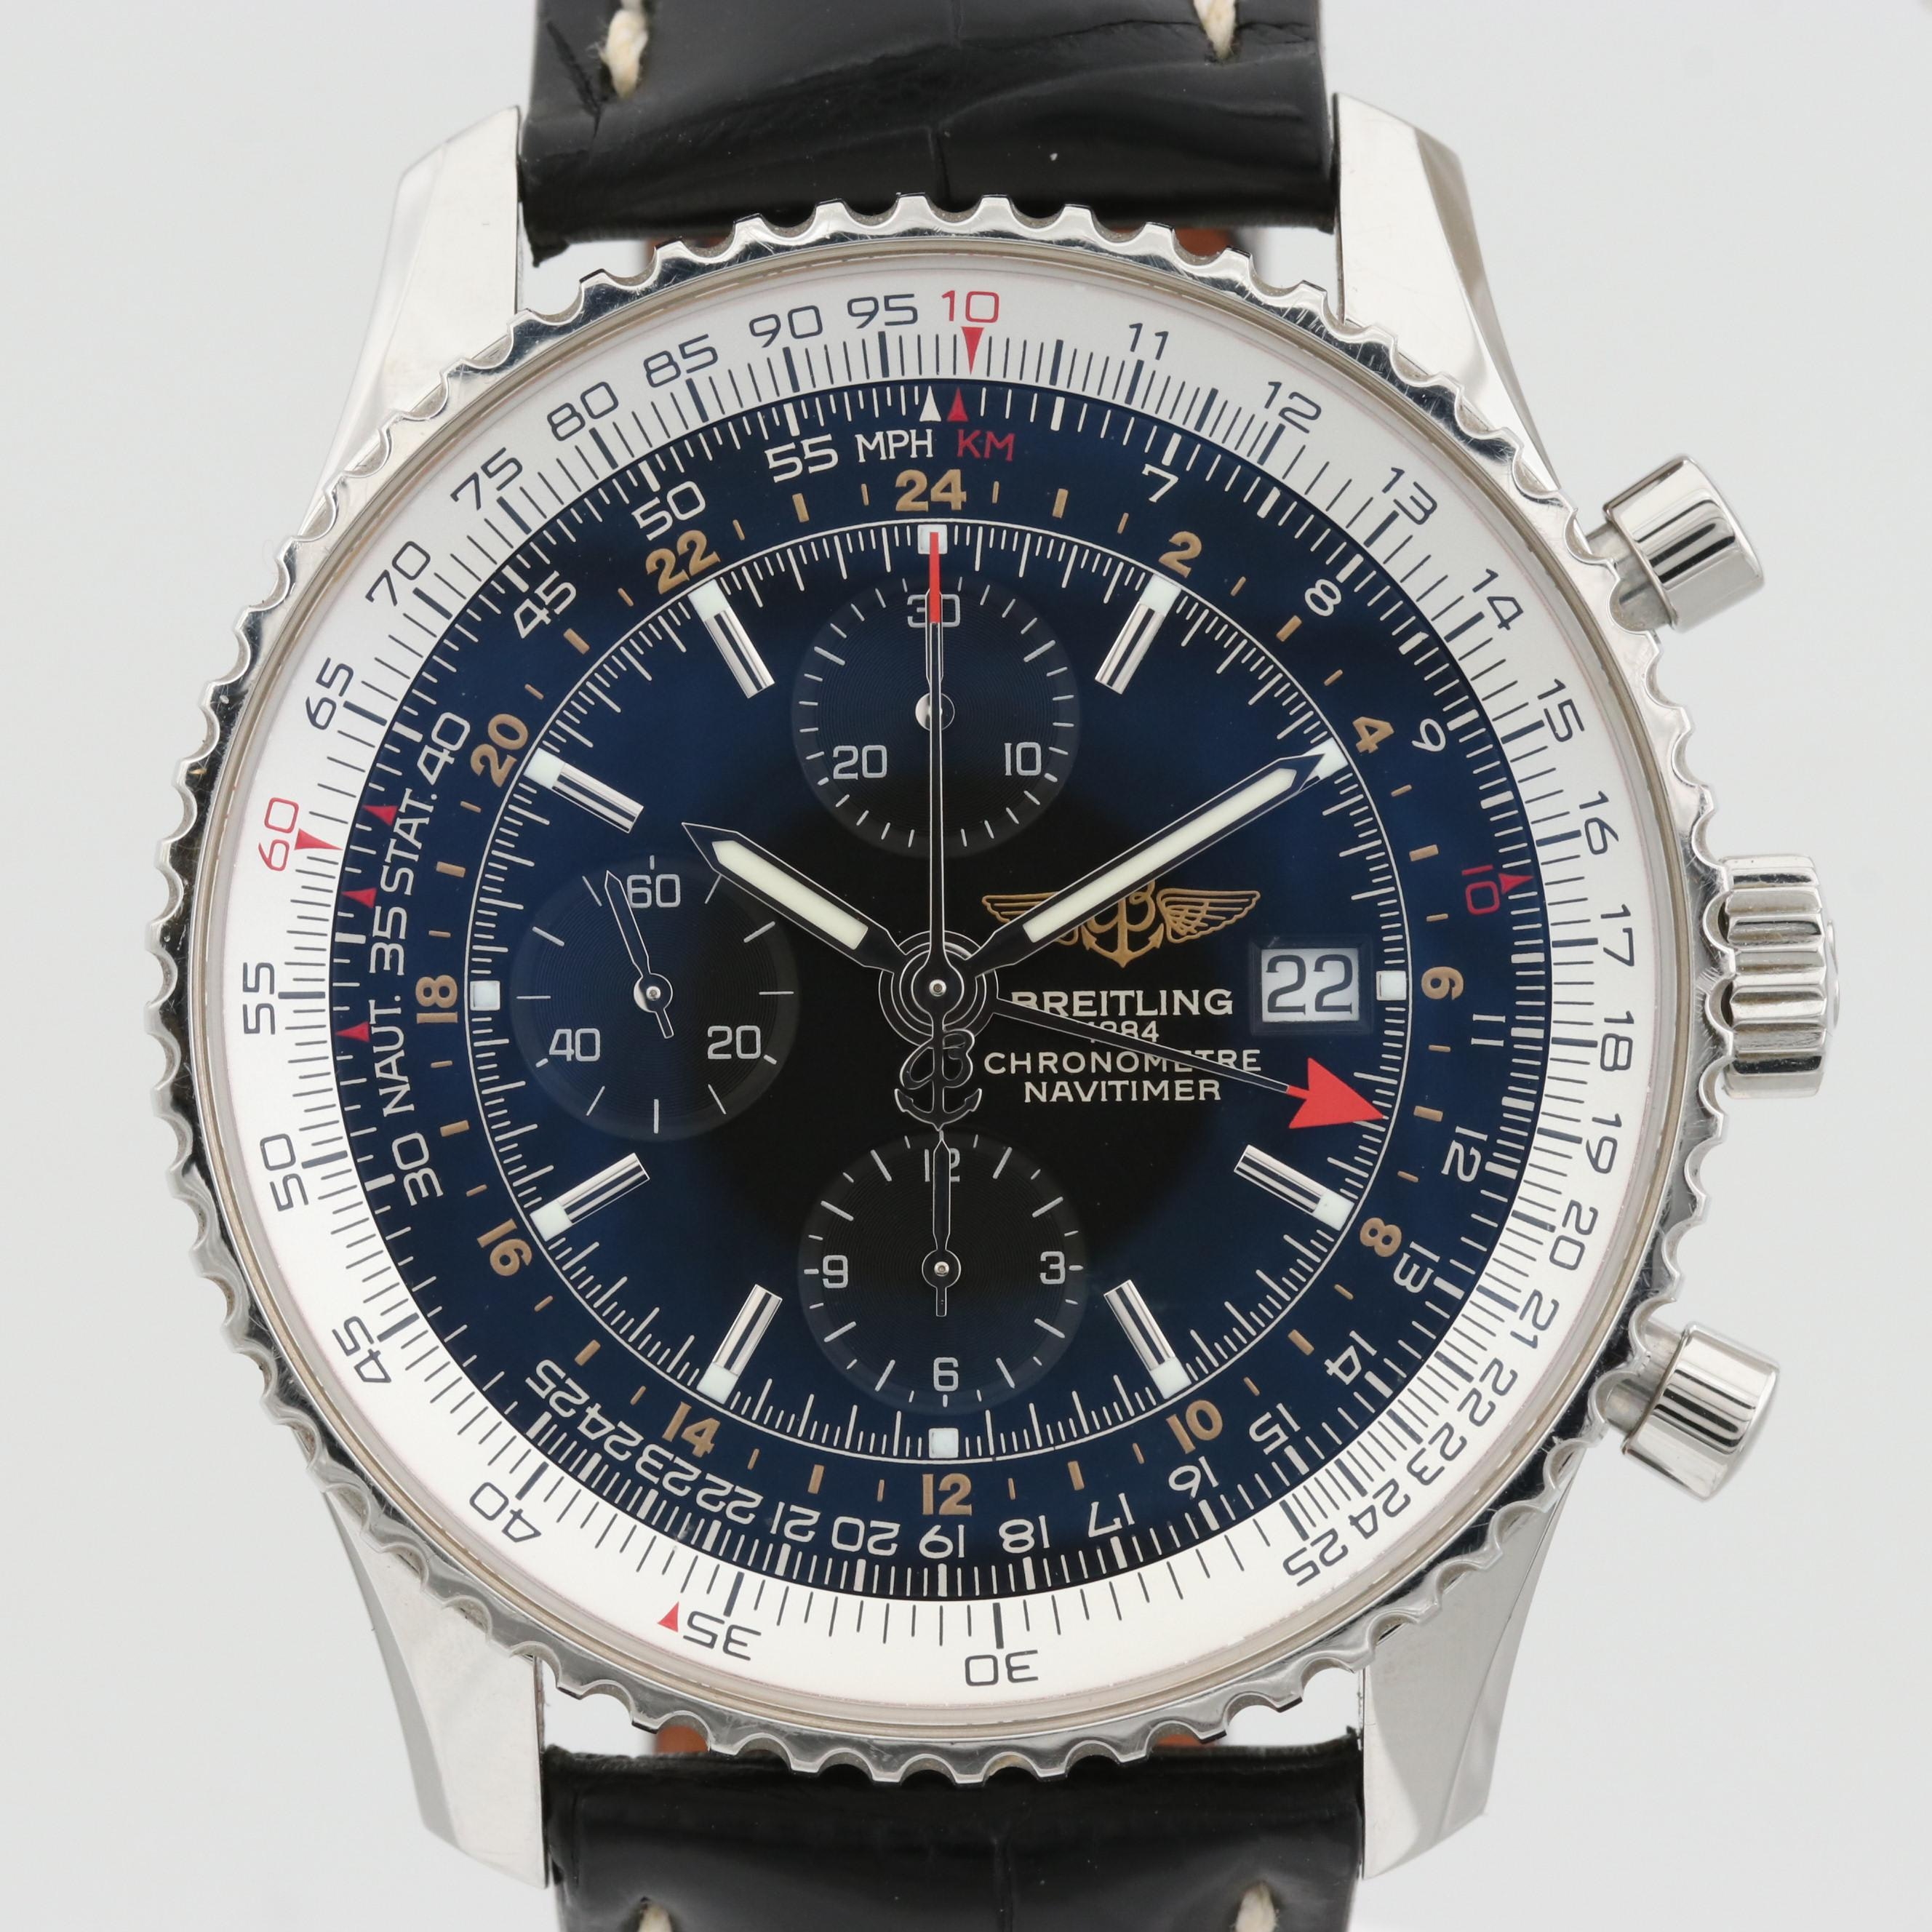 Breitling Navitimer World Stainless Steel Automatic Chronograph Wristwatch